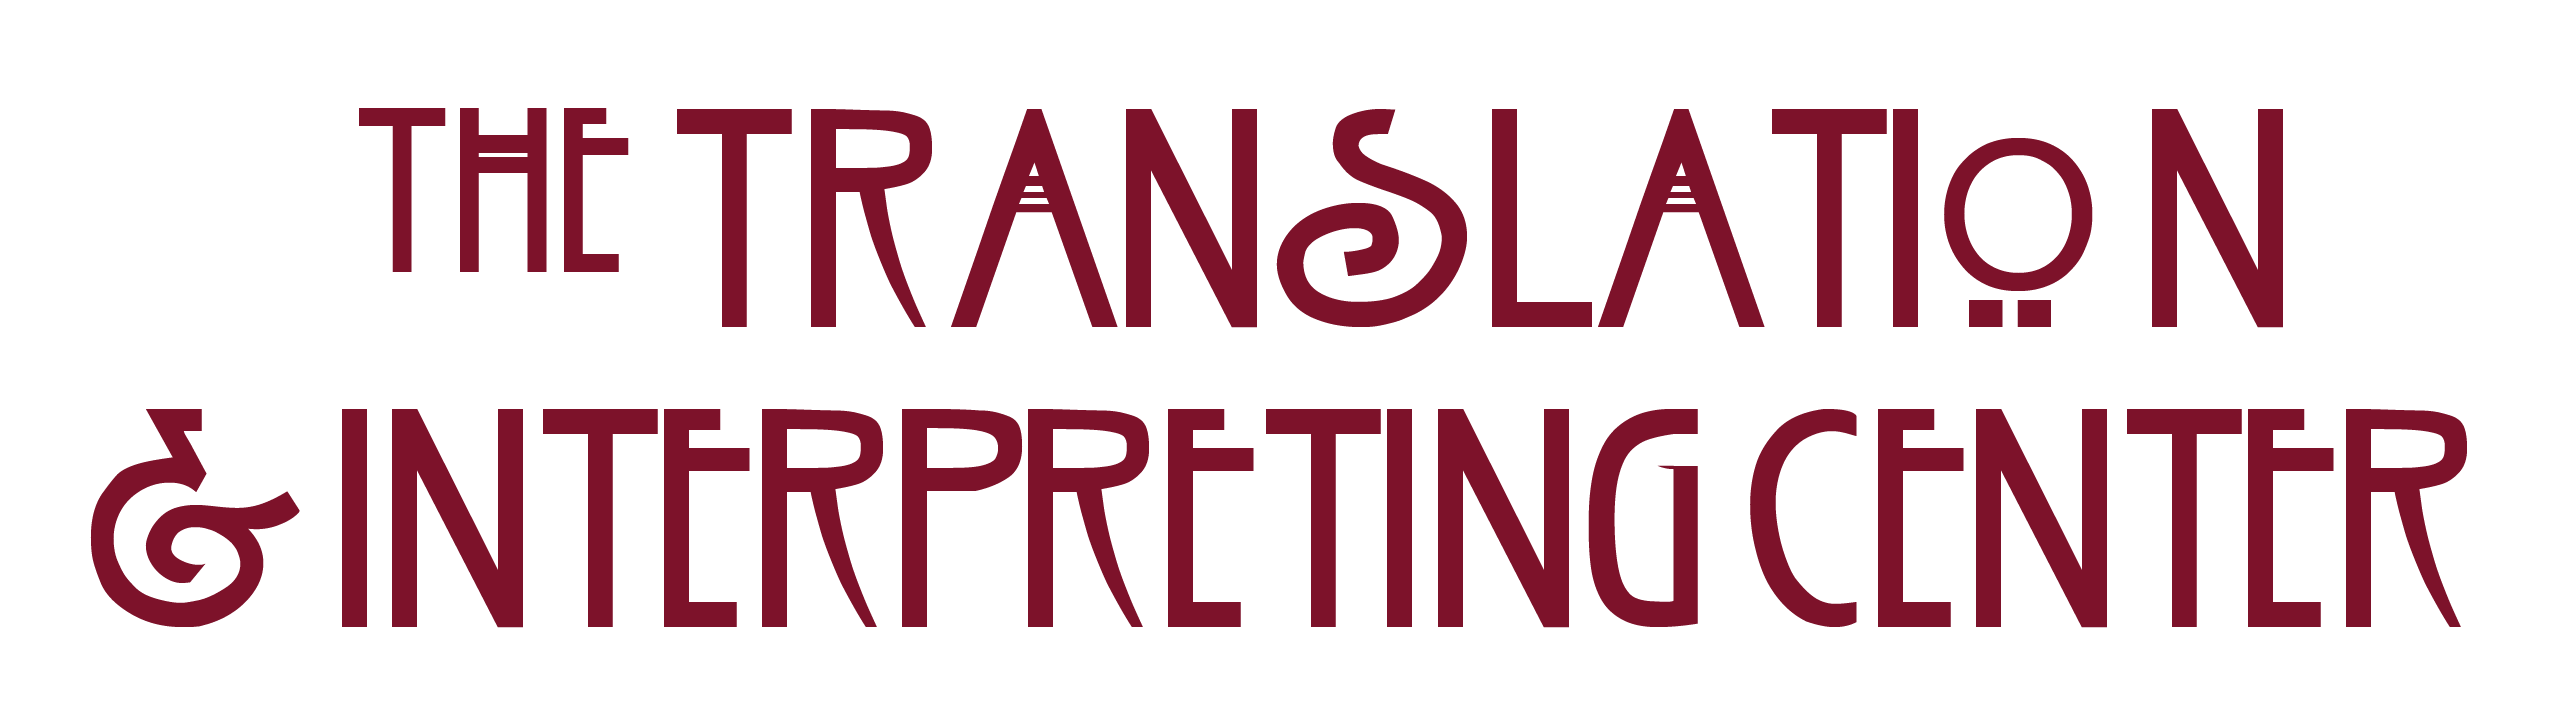 Translation and Interpreting Center of Denver